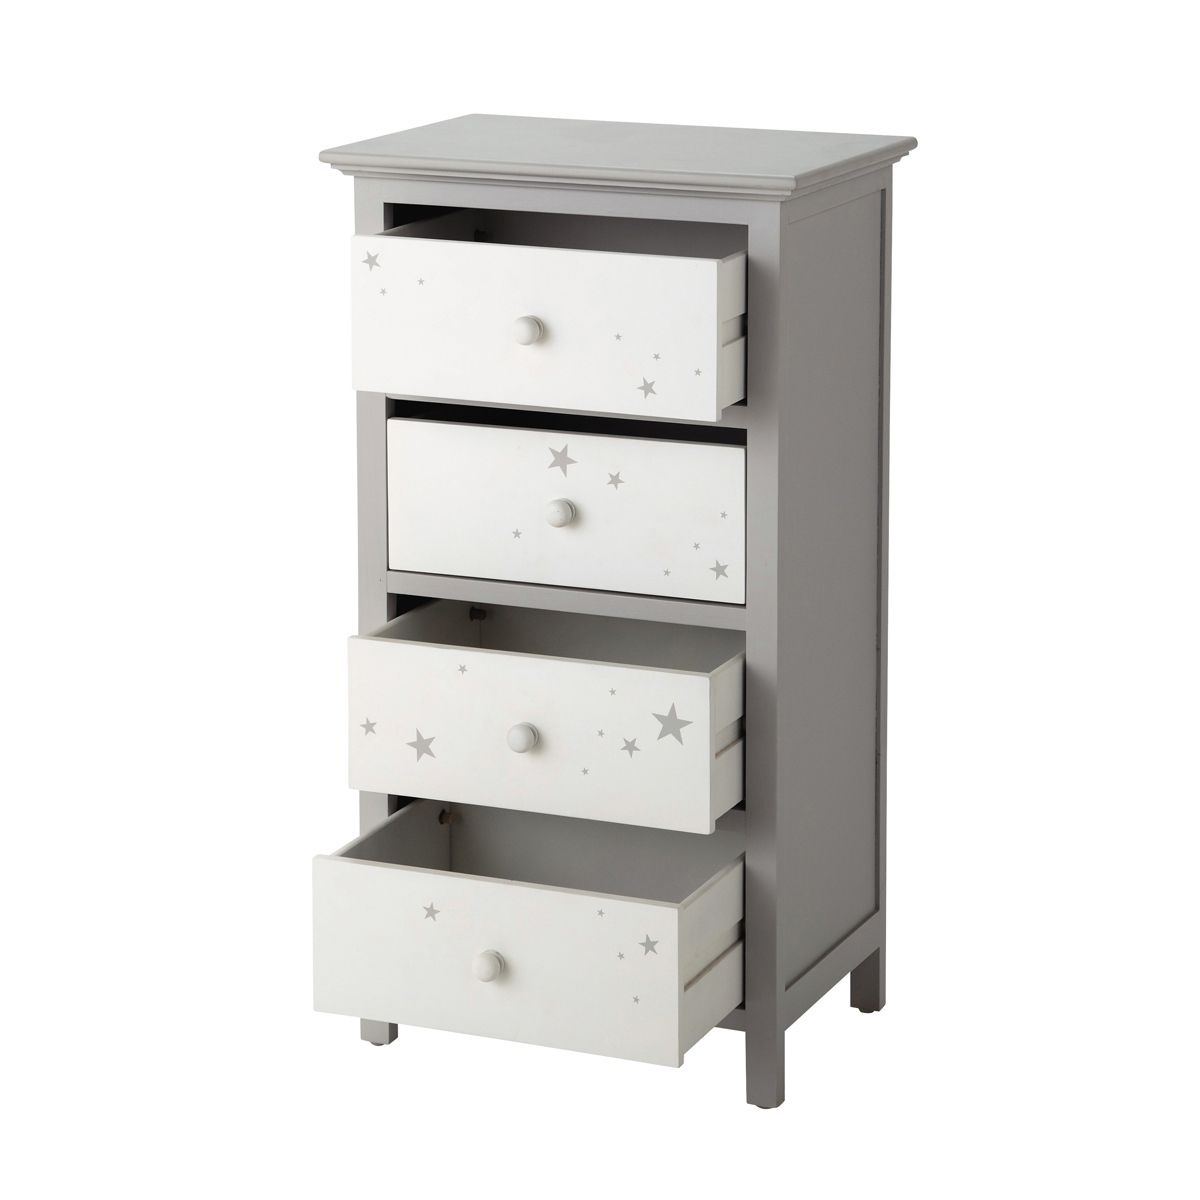 chiffonnier en bois gris l 46 cm chiffonnier rangement enfant et chiffonnier blanc. Black Bedroom Furniture Sets. Home Design Ideas